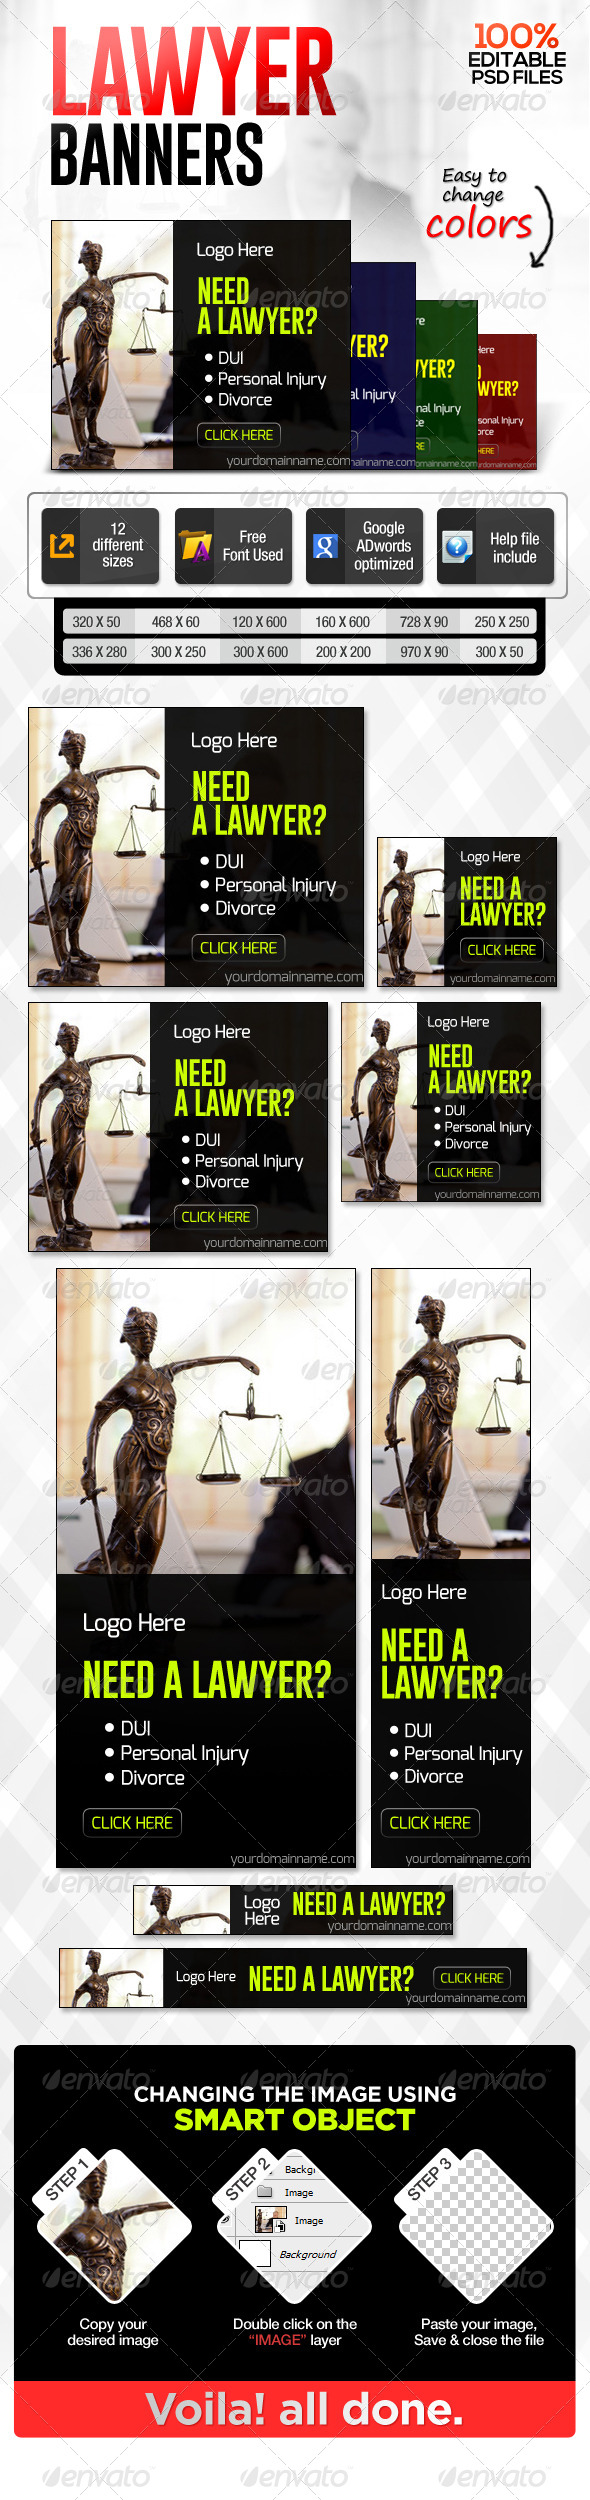 GraphicRiver Lawyer Banners 6985919